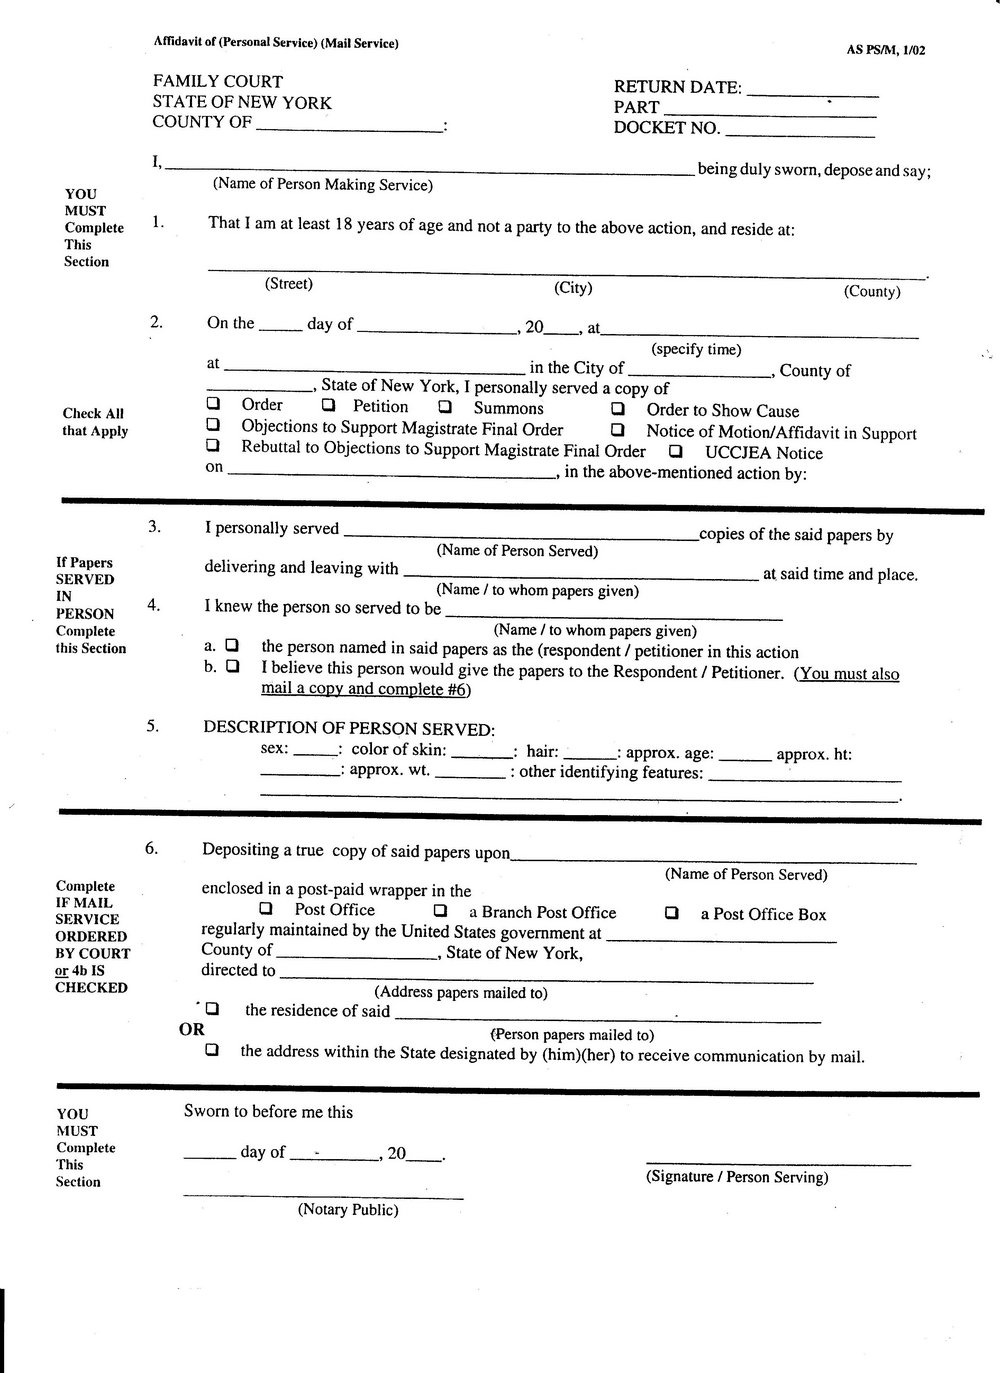 Affidavit Of Service Form Ny